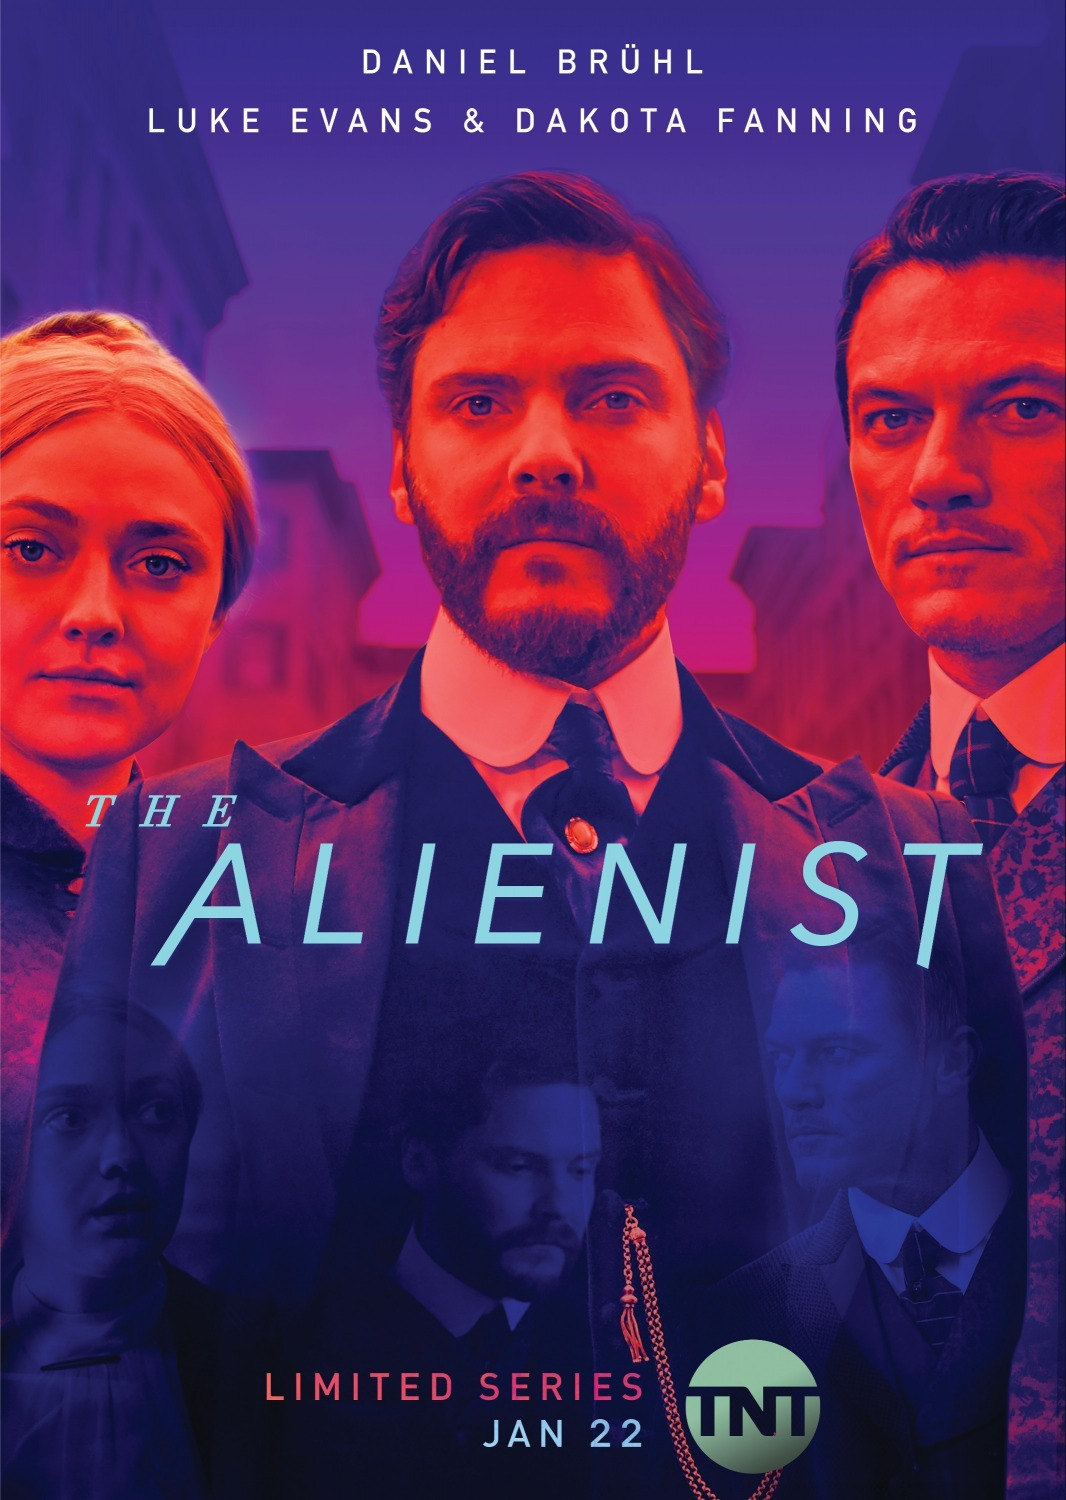 The Alienist S02 2020 Hindi Complete Netflix Web Series 720p HDRip 2675MB Download